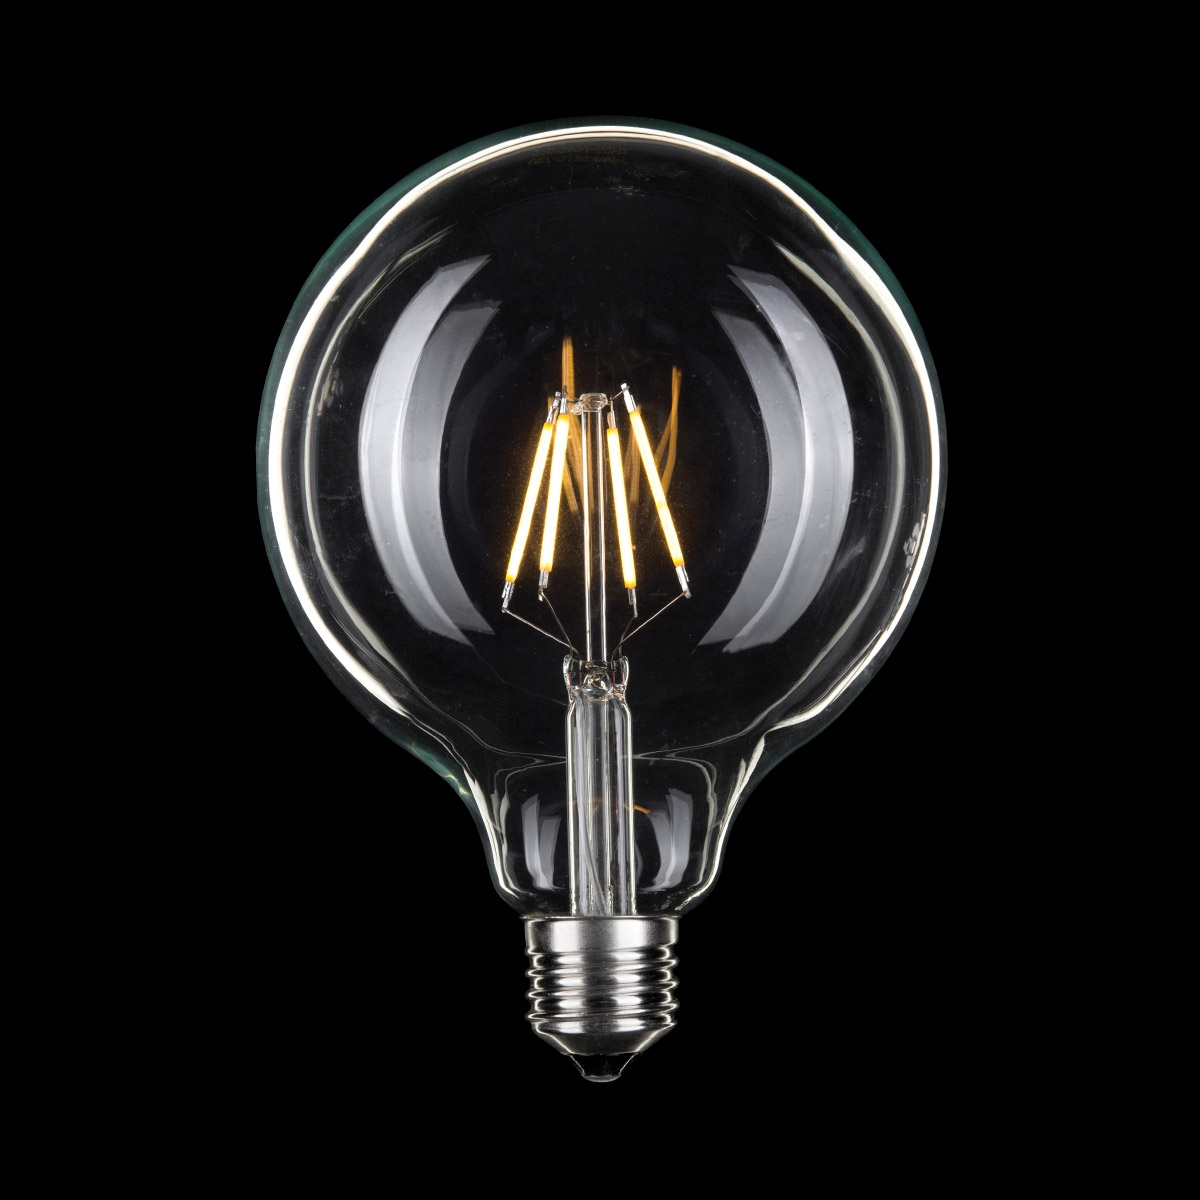 LED G125 SPHERICAL CARBON FILAMENT GLOBE